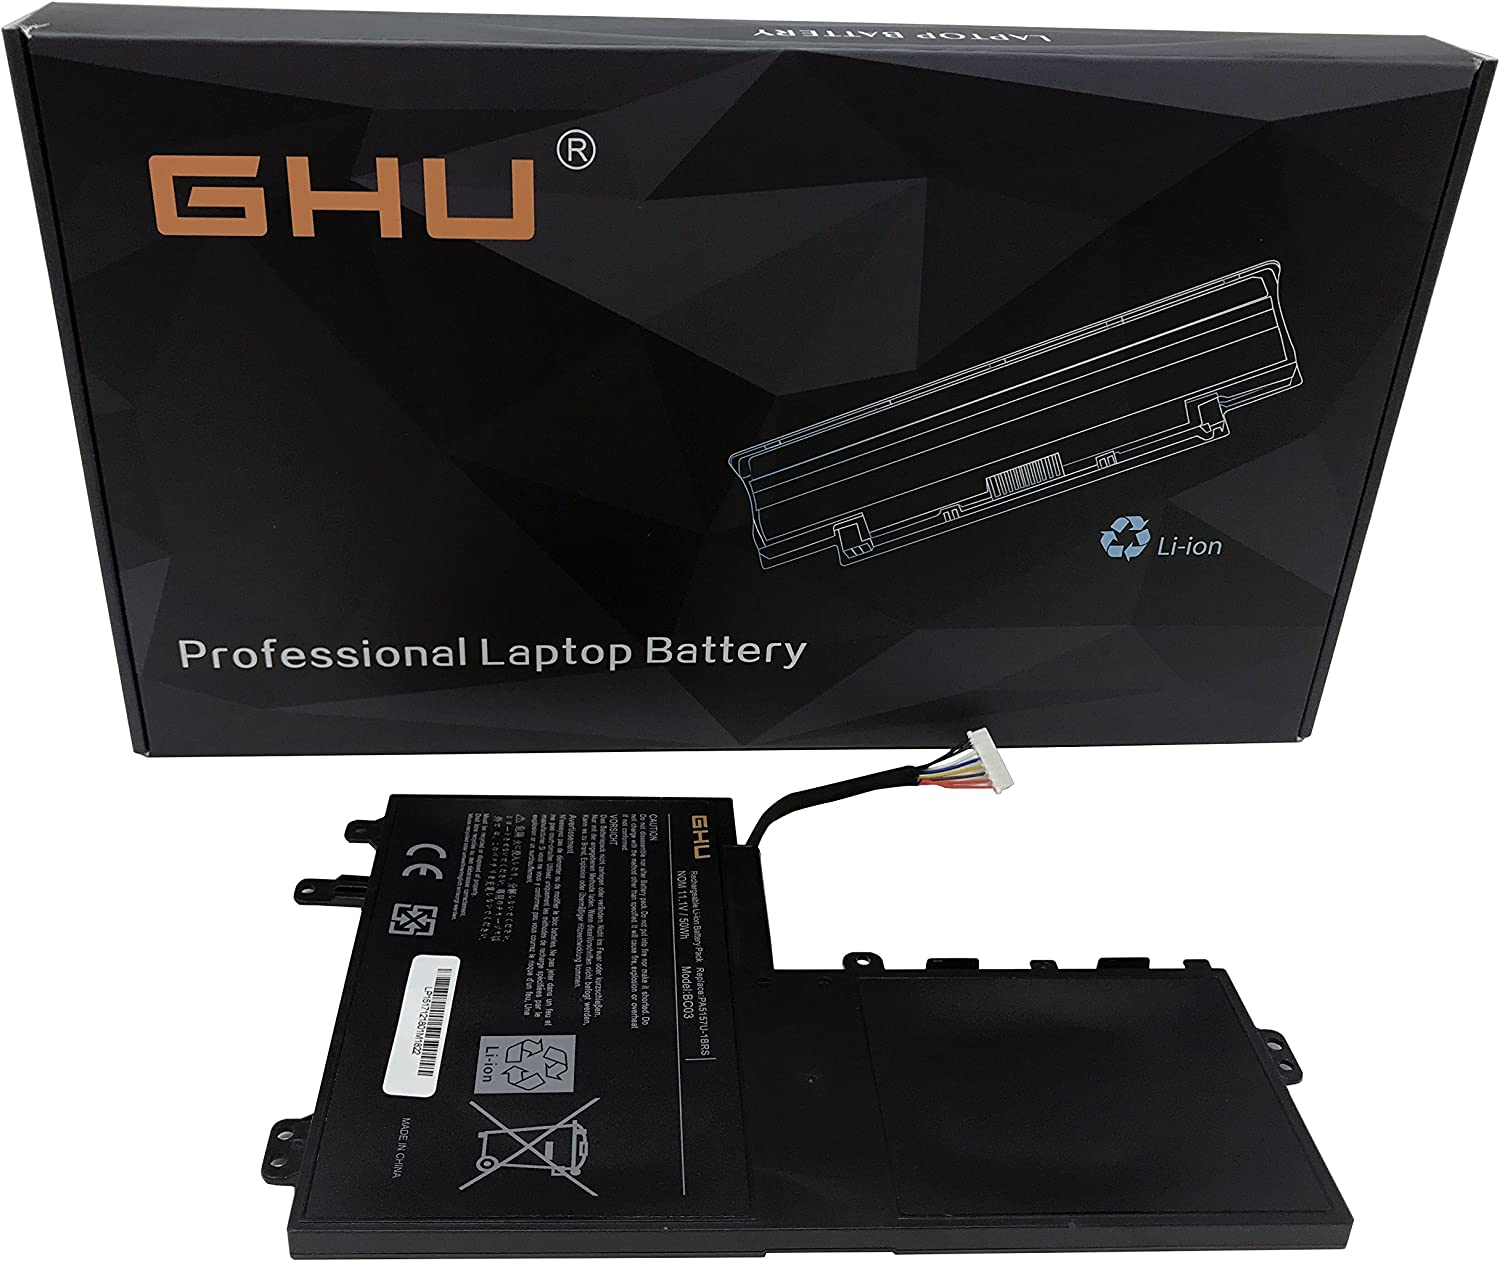 New GHU Battery PA5157U-1BRS Compatible with Toshiba Satelite U940 E45T E45T-A4100 E45T-A4200 E55 E55T-A5320 E55T-A5114 P000577250